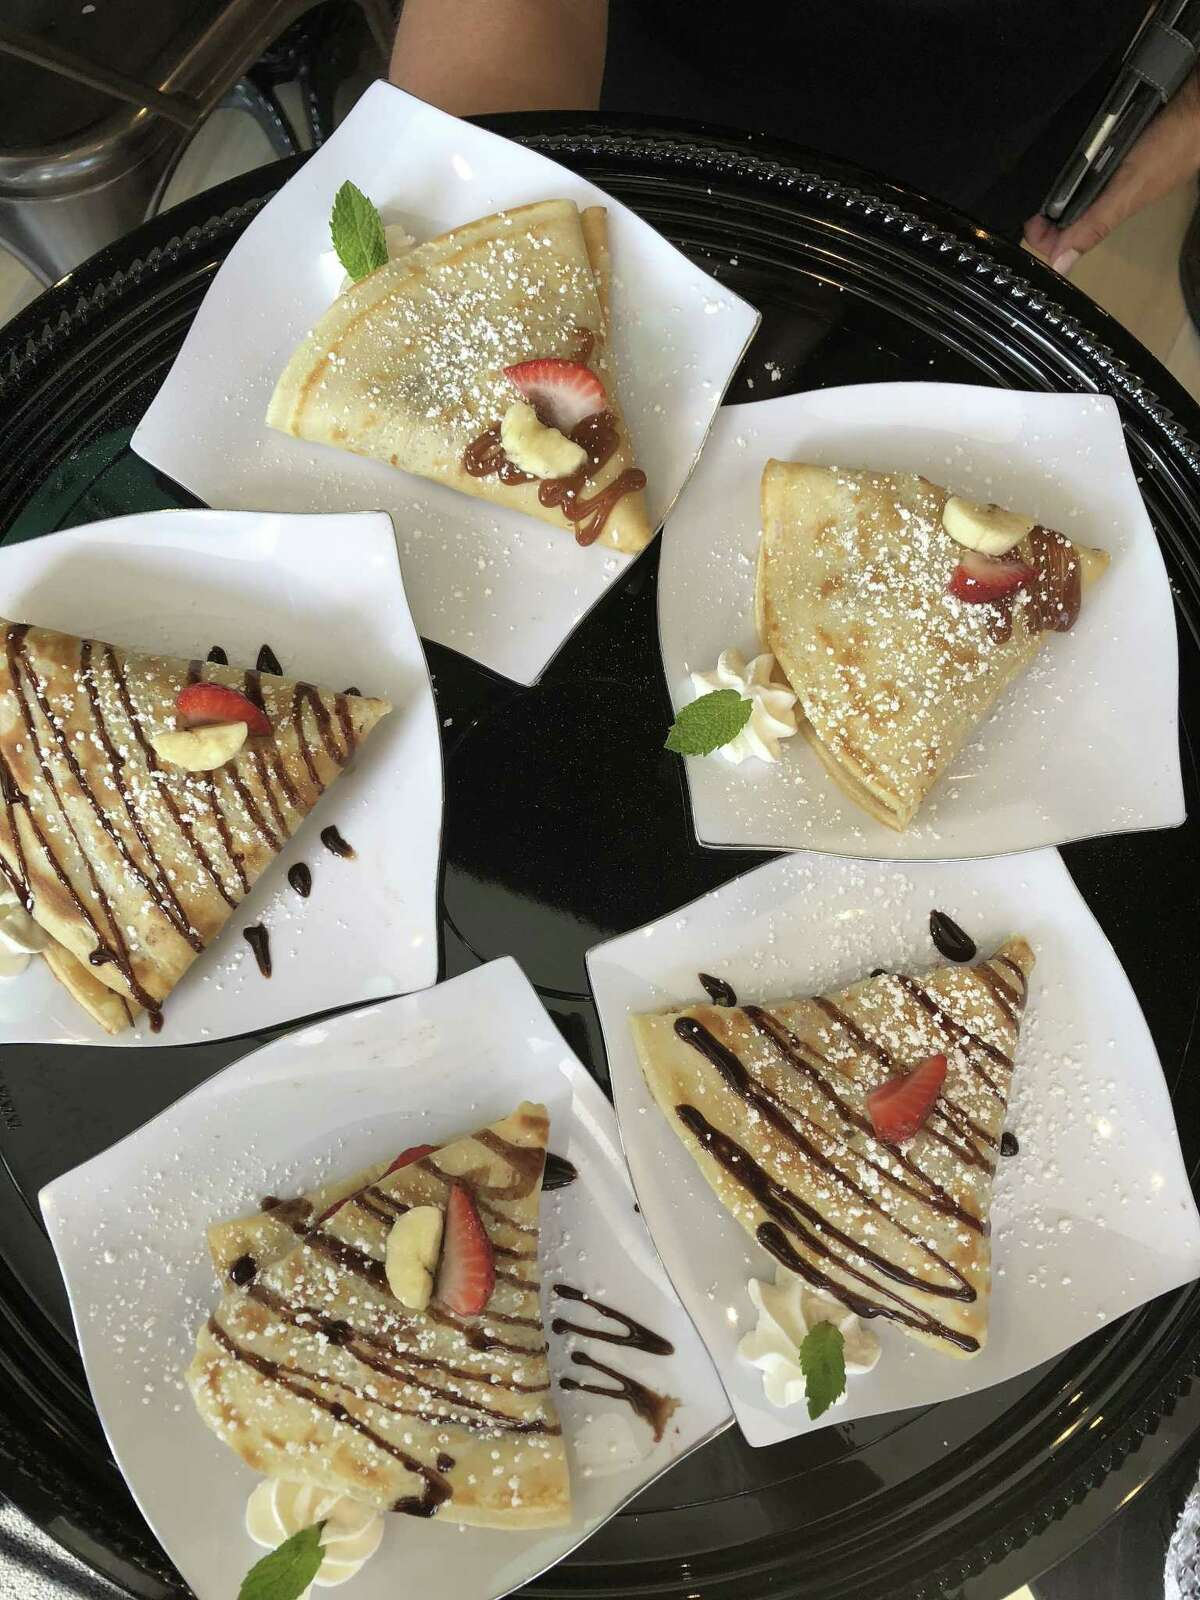 A selection of crepes from Sweet Paris La Centerra at Cinco Ranch is located at 23501 Cinco Ranch Blvd., S120, Katy, TX 77494.